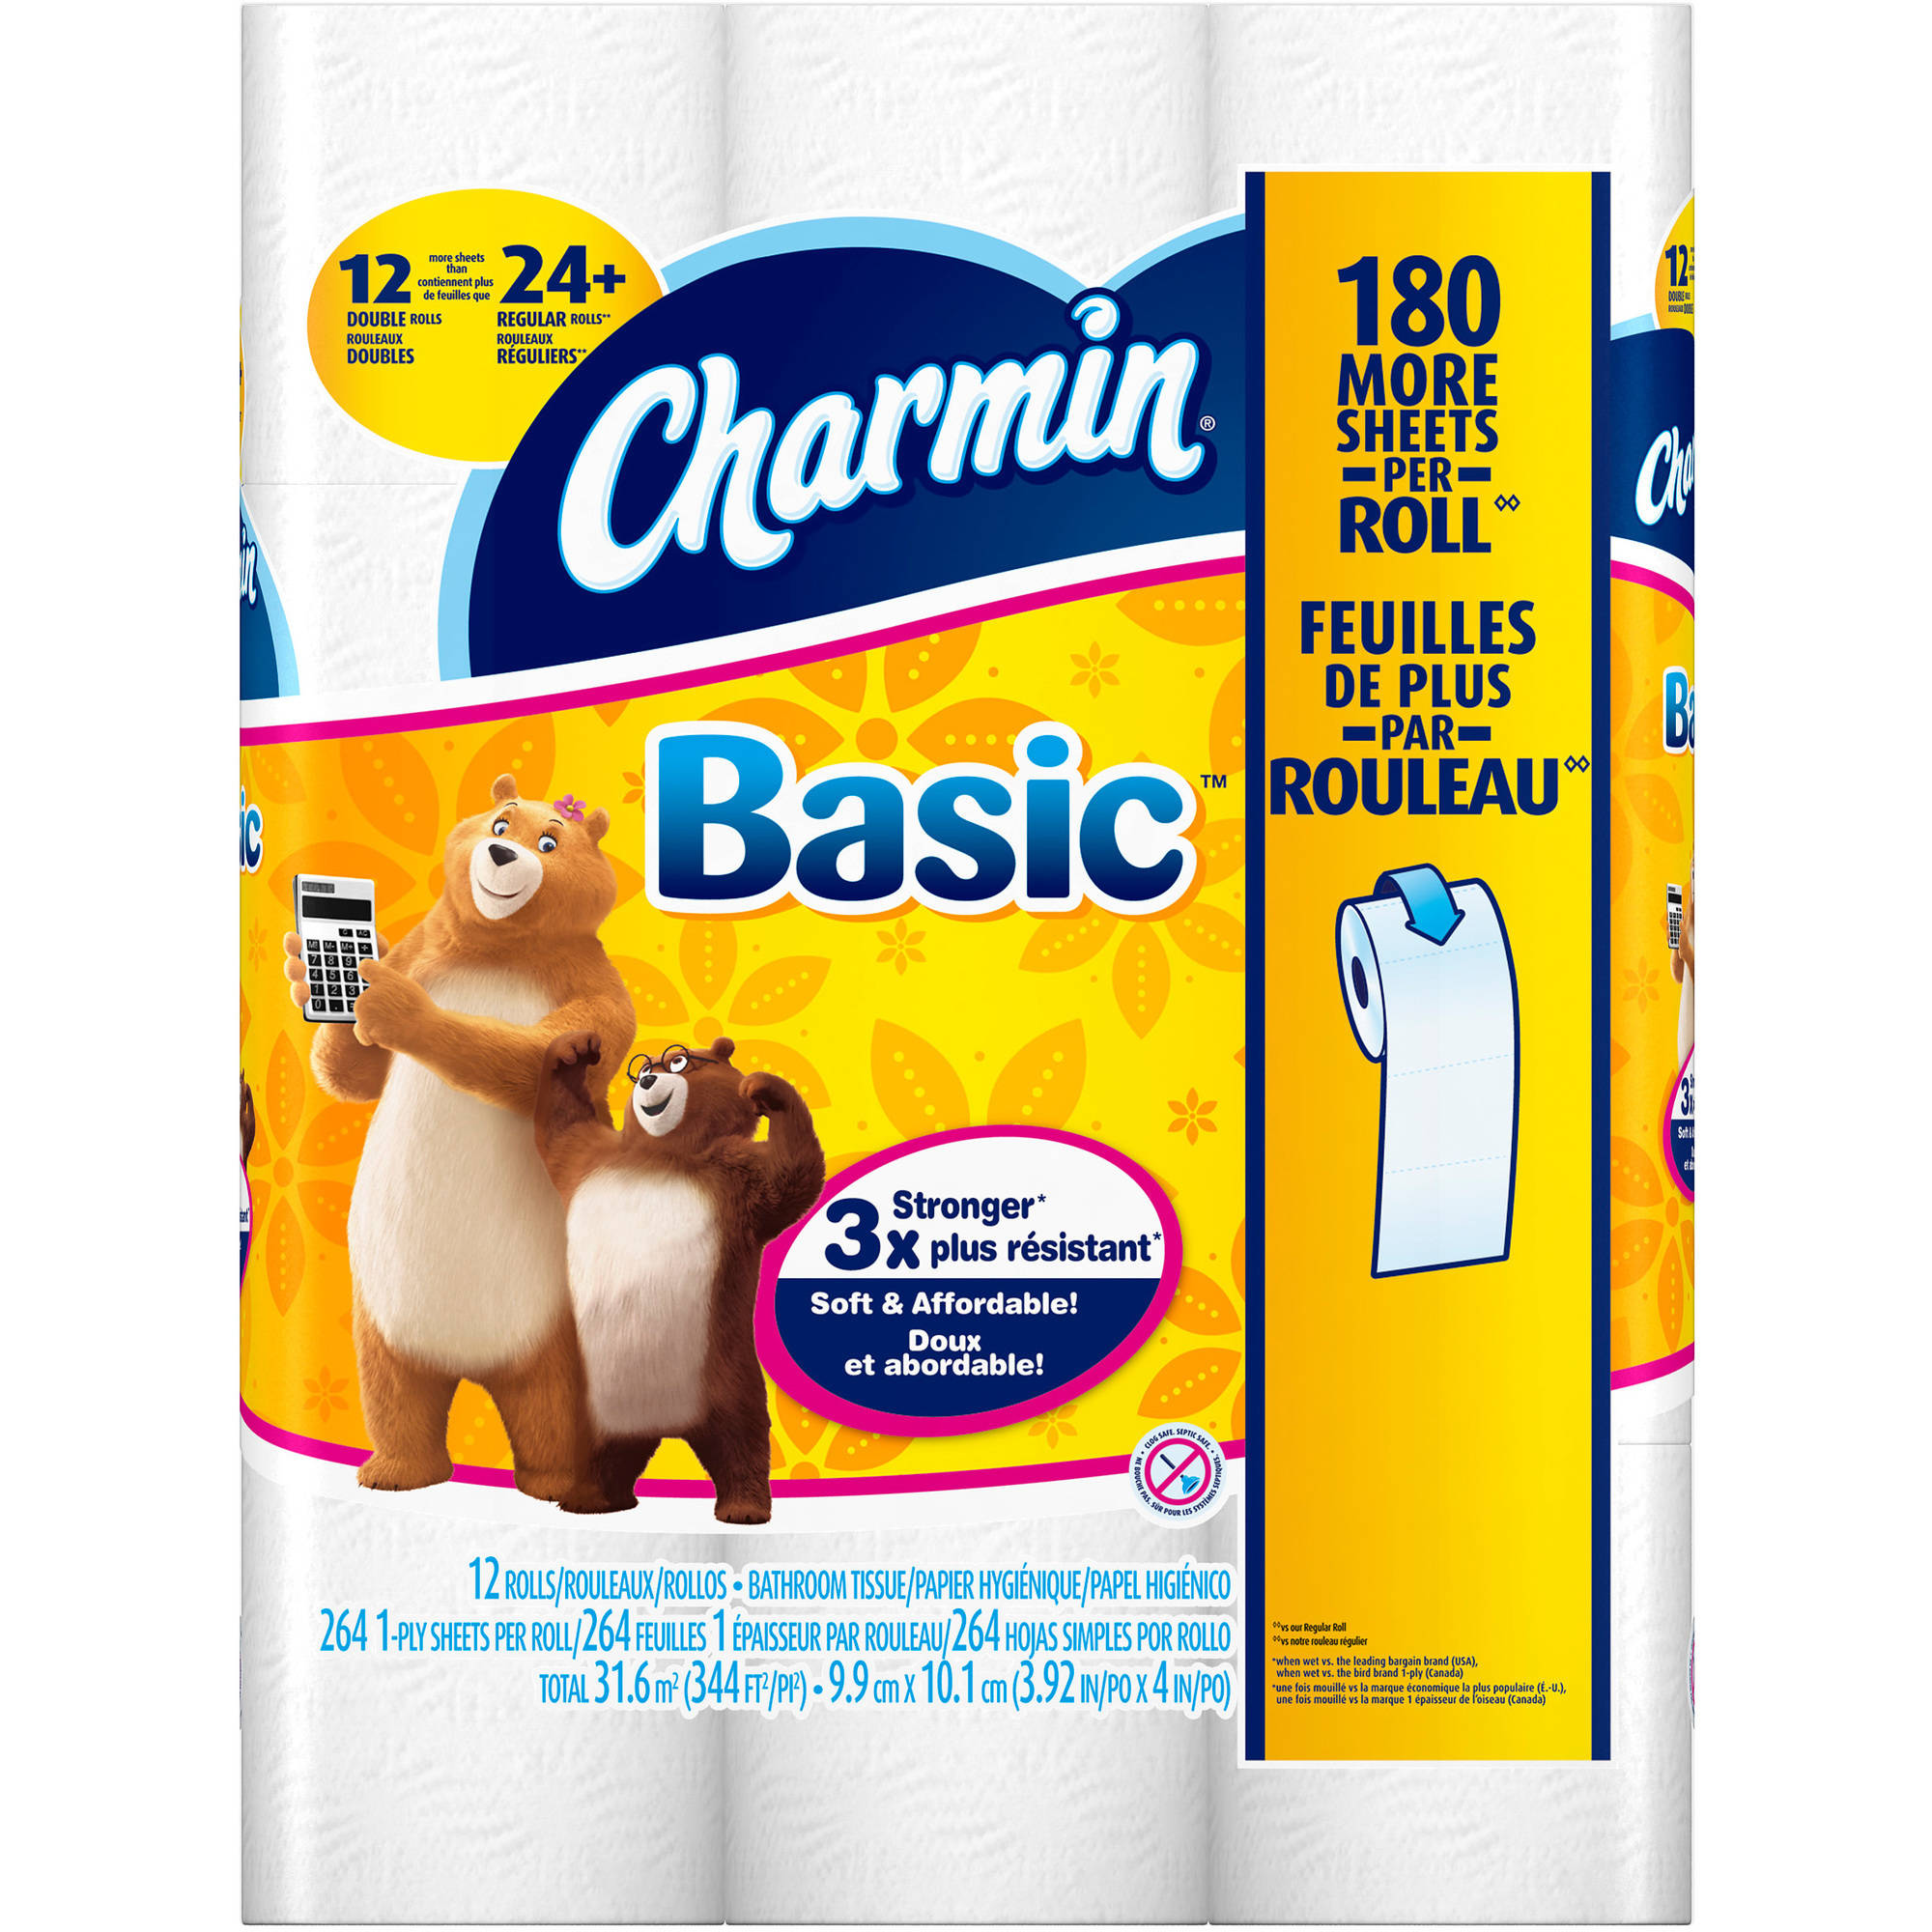 Charmin Basic Double Roll Bathroom Tissue, 12 rolls